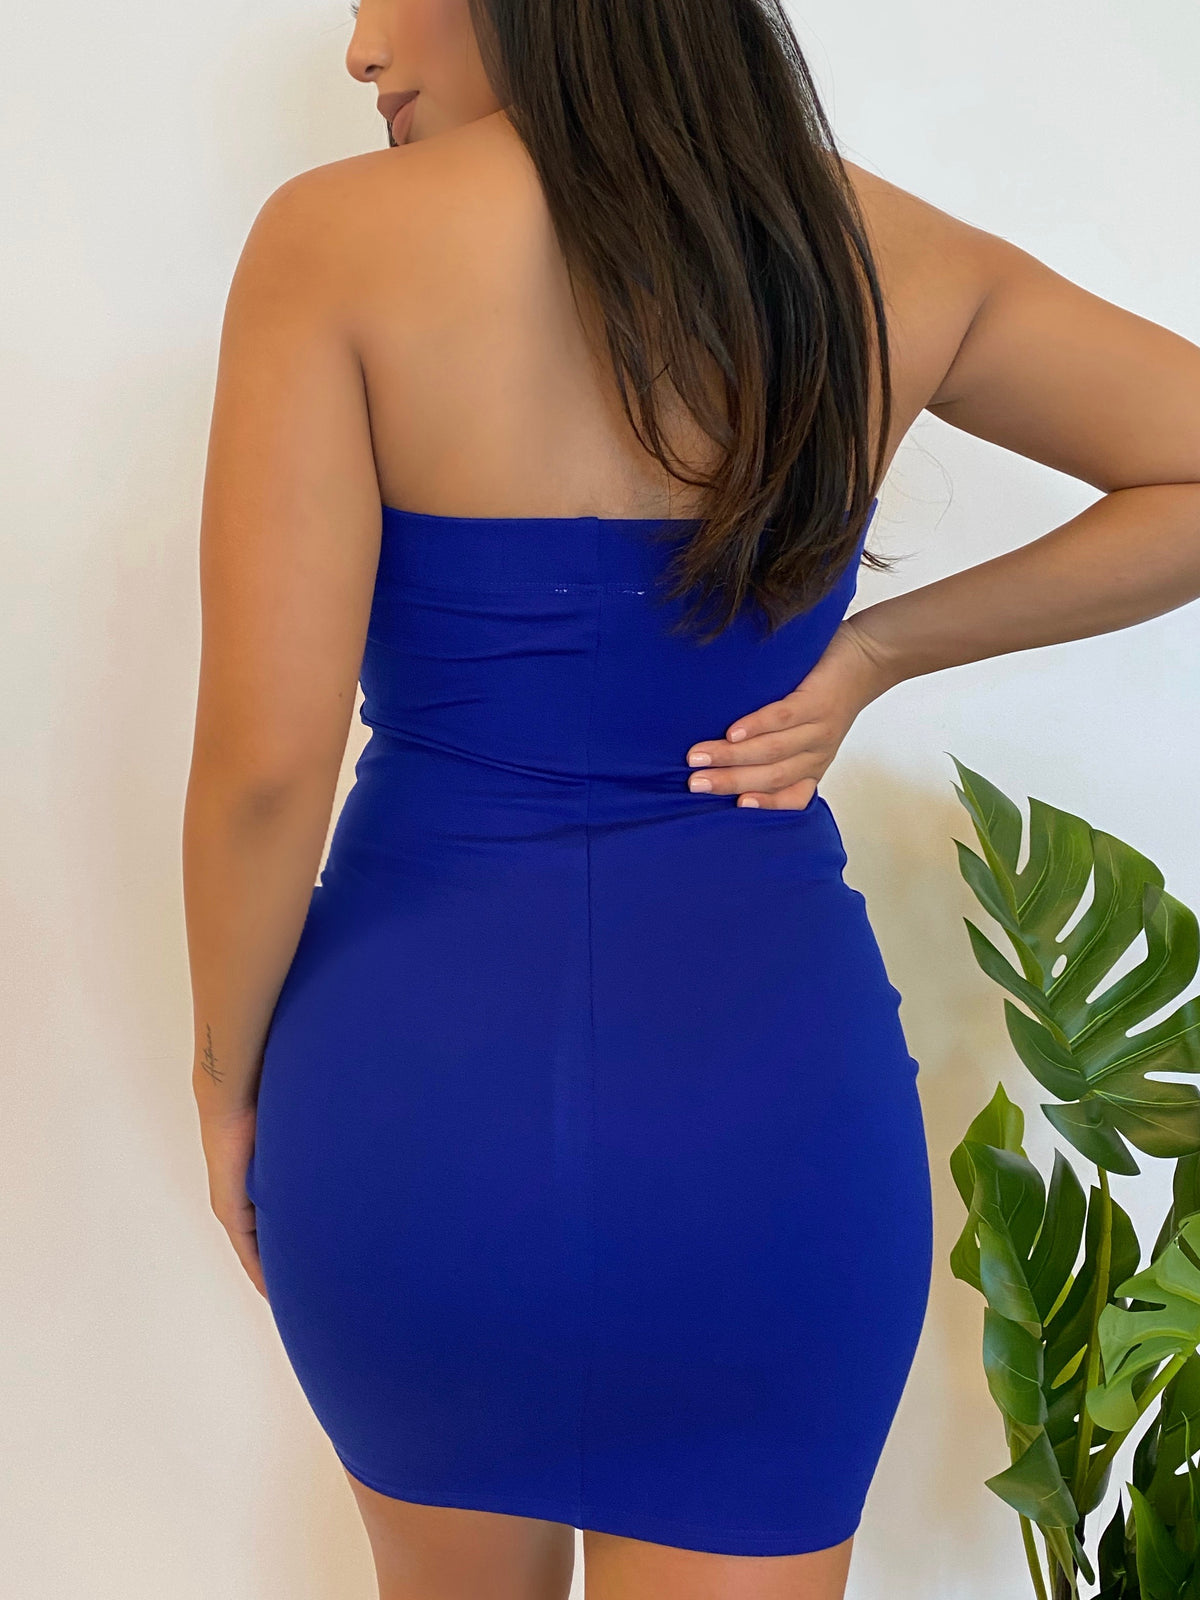 royal tube dress, strapless, mid thigh length, double layer